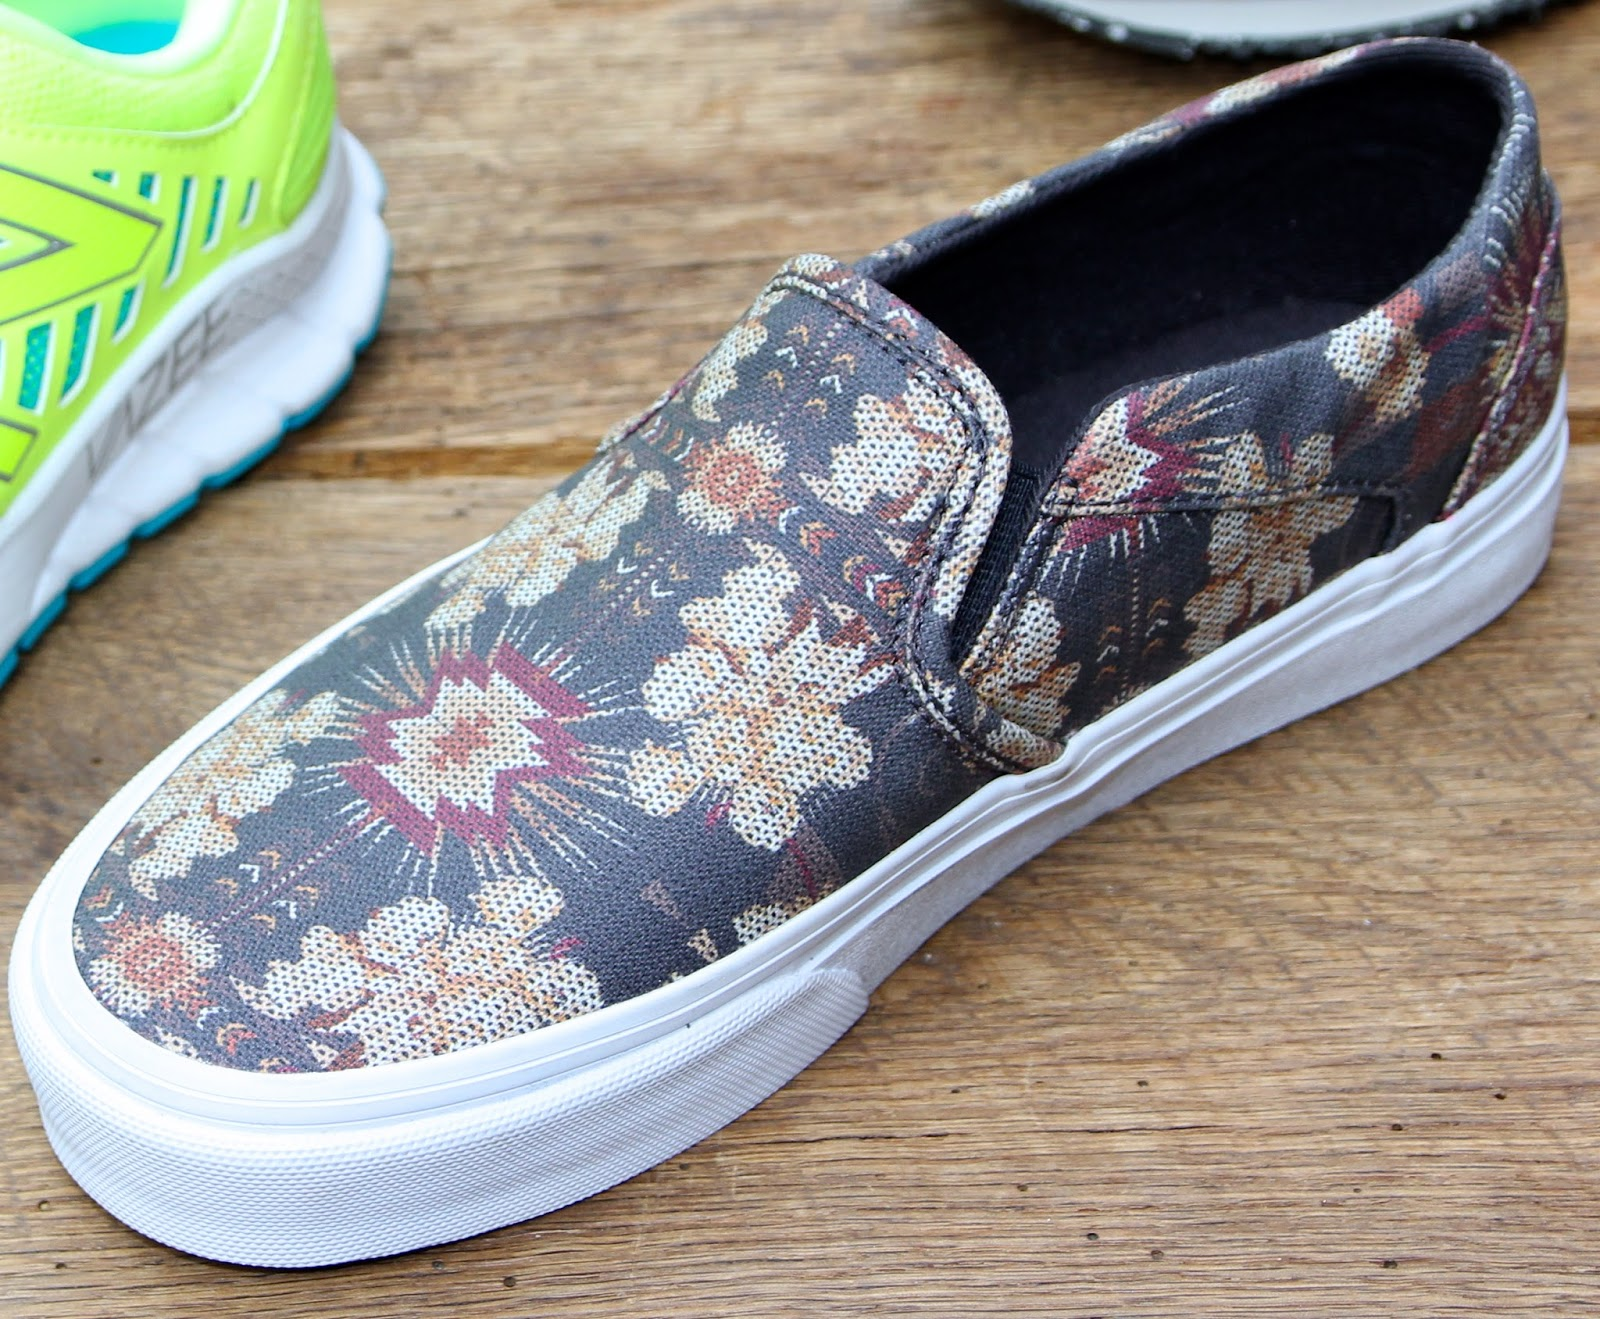 Vans Asher $49.95 DSW price slip-ons with white sneaker outsole get dark  floral uppers for Fall